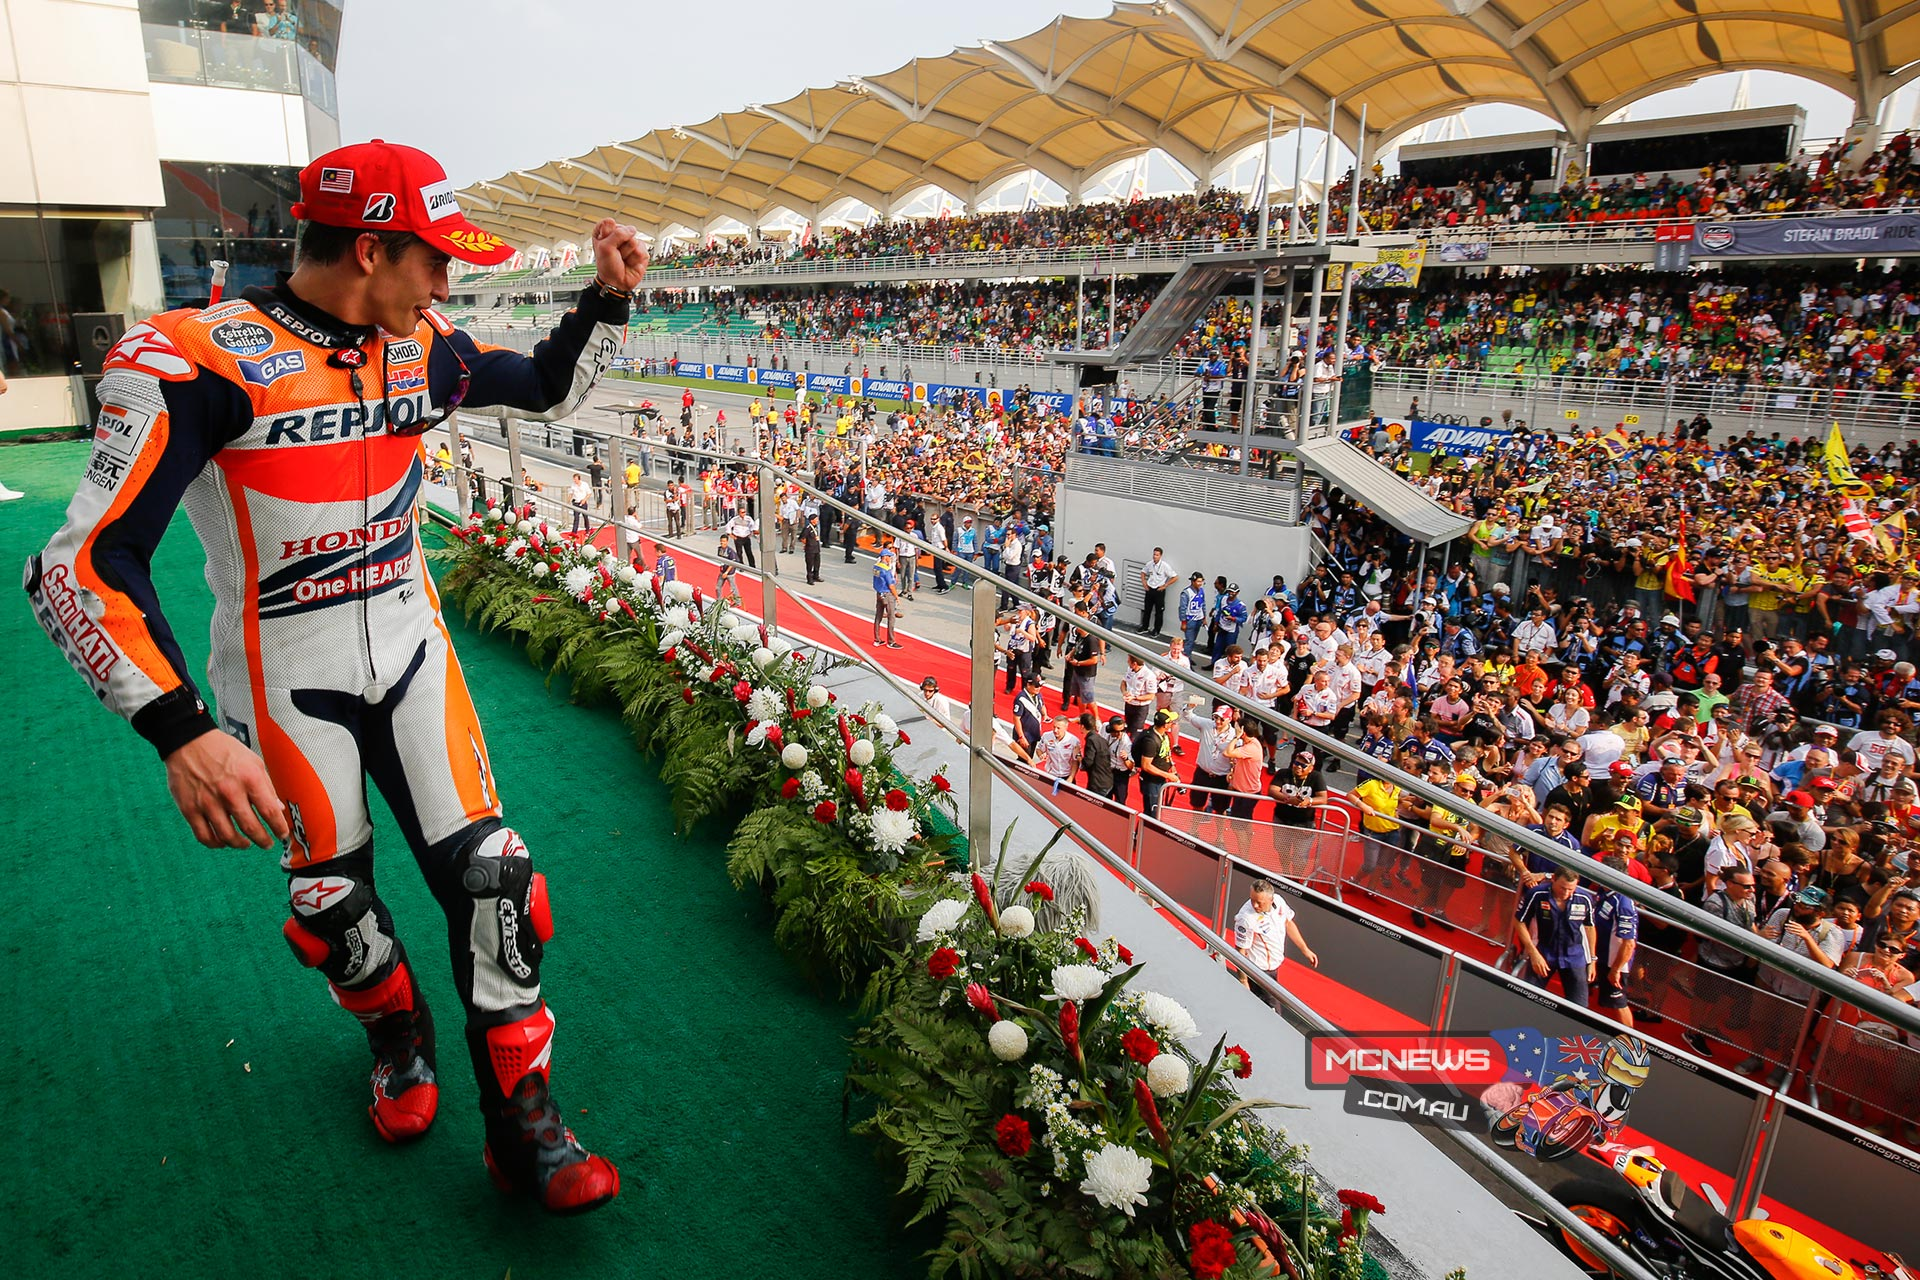 The MotoGP race at the Shell Advance Malaysian Motorcycle Grand Prix was won by MotoGP™ World Champion Marc Marquez in the scorching afternoon heat at Sepang, with Valentino Rossi and Jorge Lorenzo also on the podium.